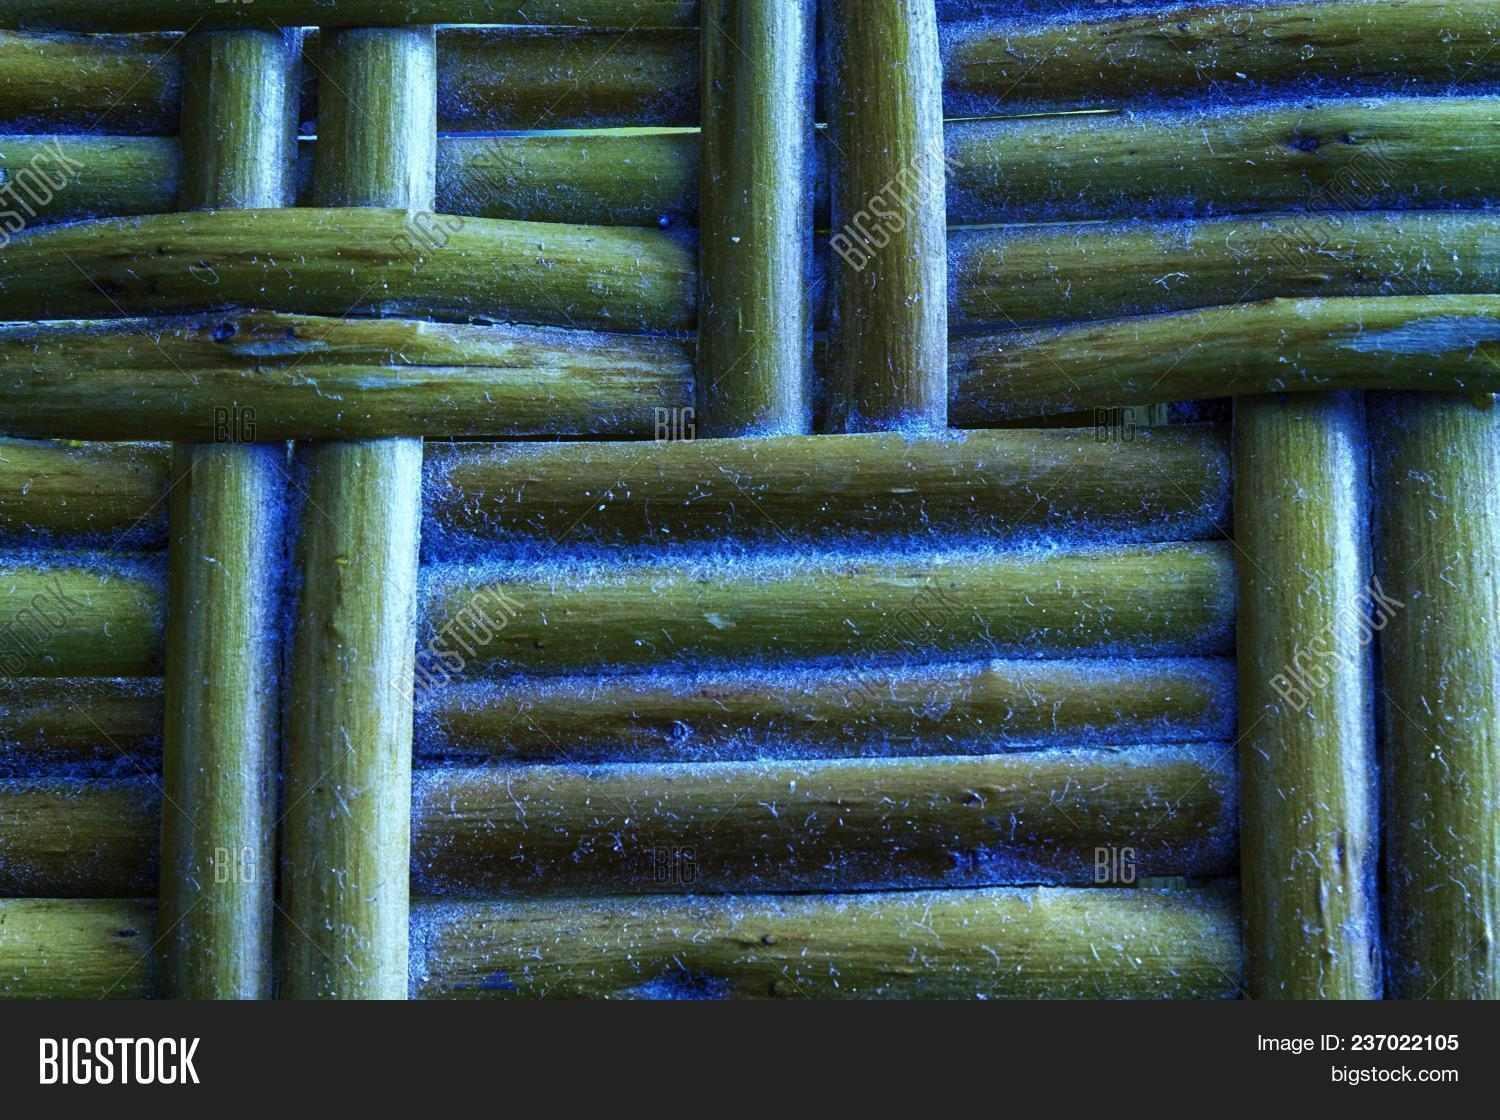 abstract,art,backdrop,background,bamboo,basket,basketry,basketwork,braided,cane,close,closeup,country,craft,culture,decor,decoration,design,detail,floor,grunge,handmade,macro,marina,mat,material,mesh,natural,old,organic,pattern,rattan,retro,rustic,stick,straw,striped,structure,surface,texture,textured,traditional,wall,wattled,weave,weaving,wicker,wood,wooden,woven